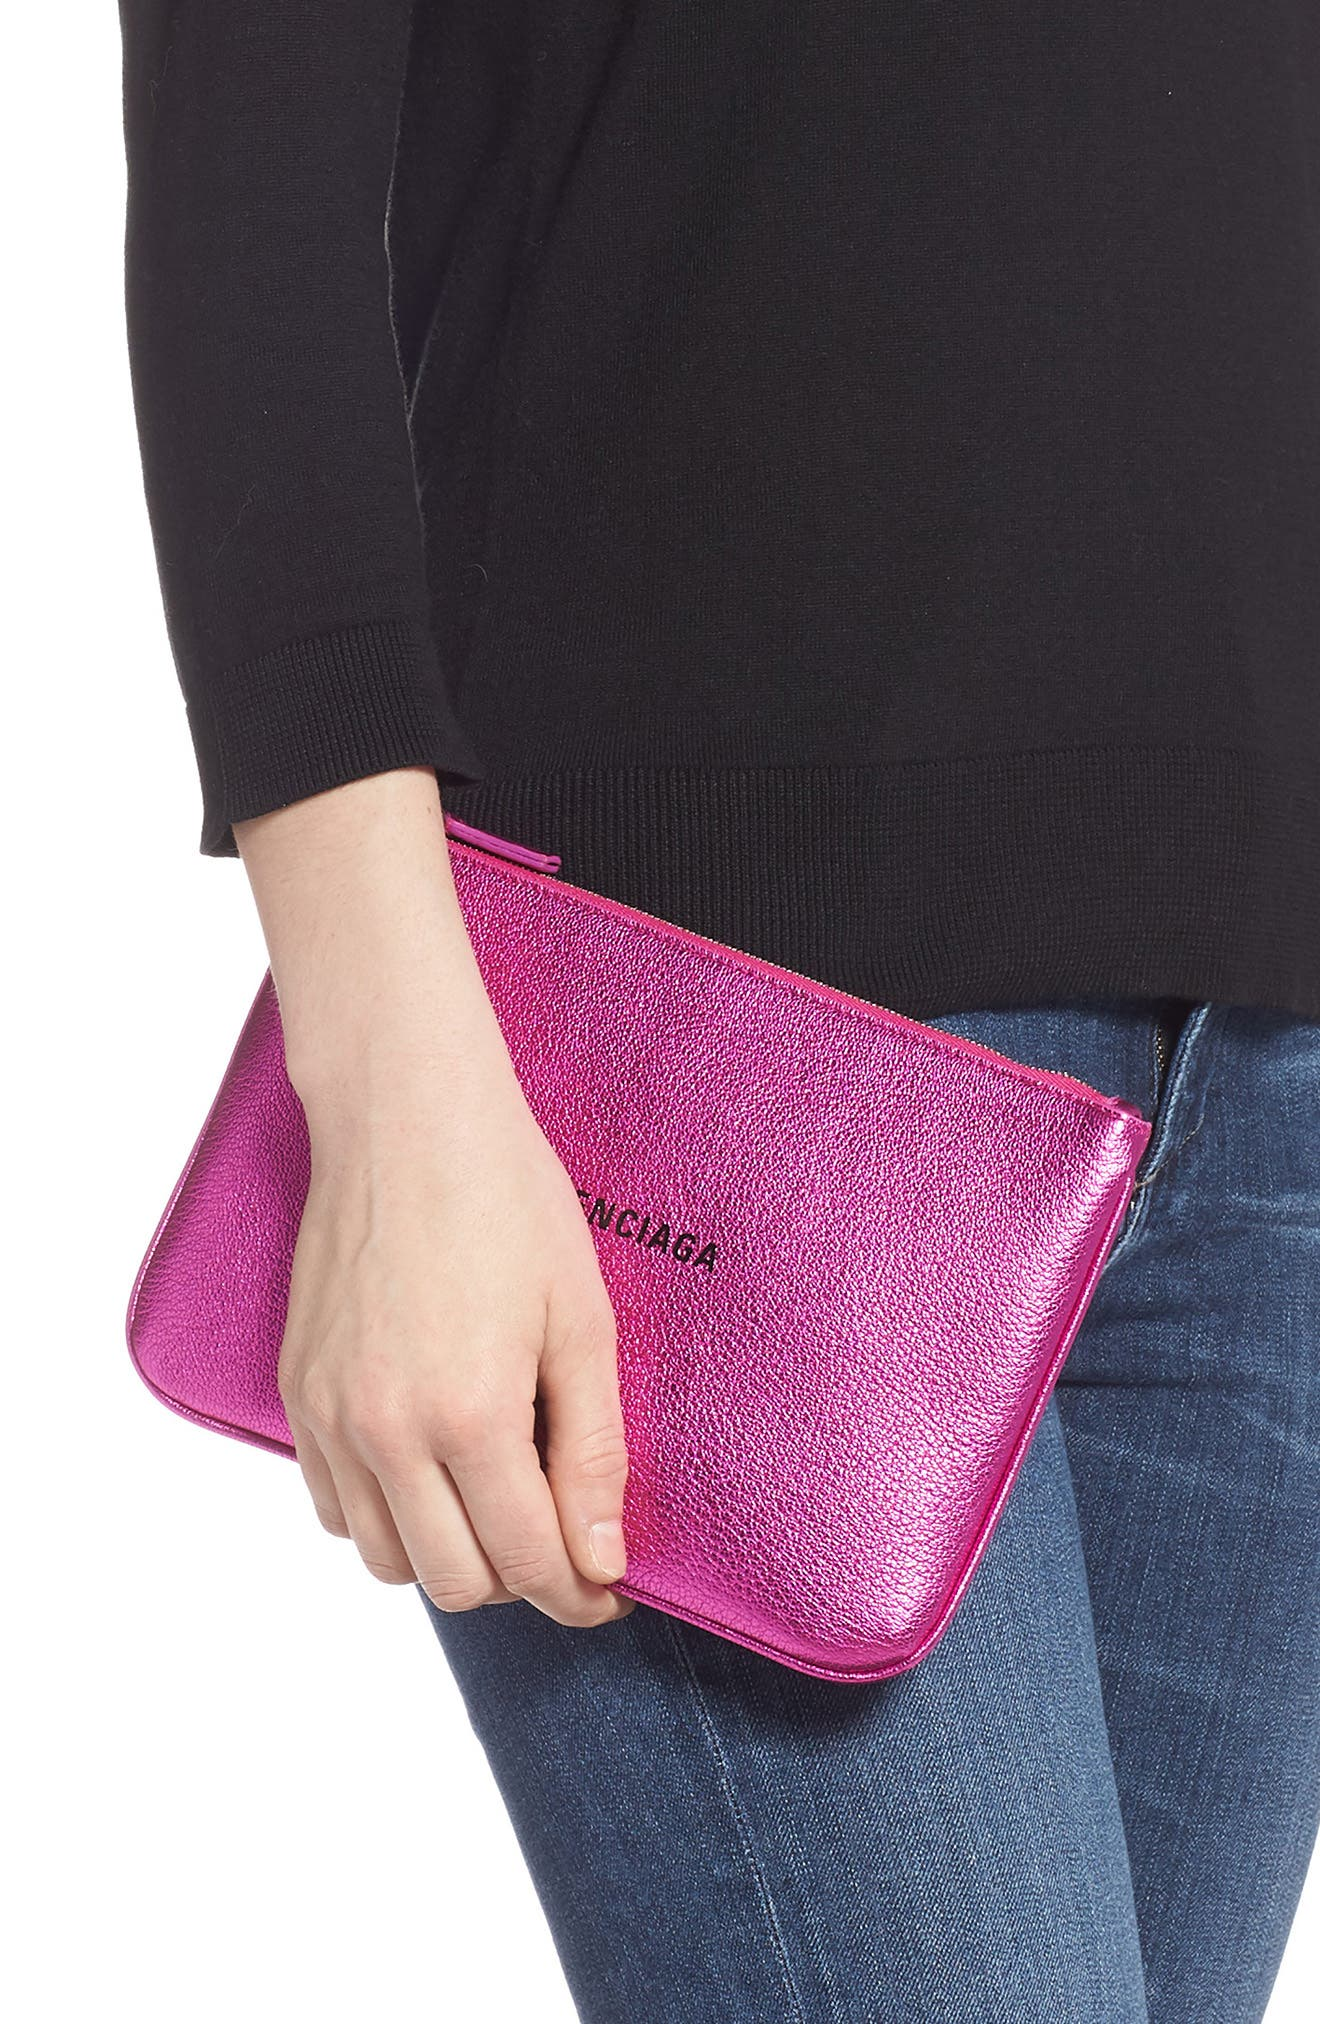 Everyday Leather Pouch,                             Alternate thumbnail 2, color,                             ROSE FUCHSIA/ NOIR